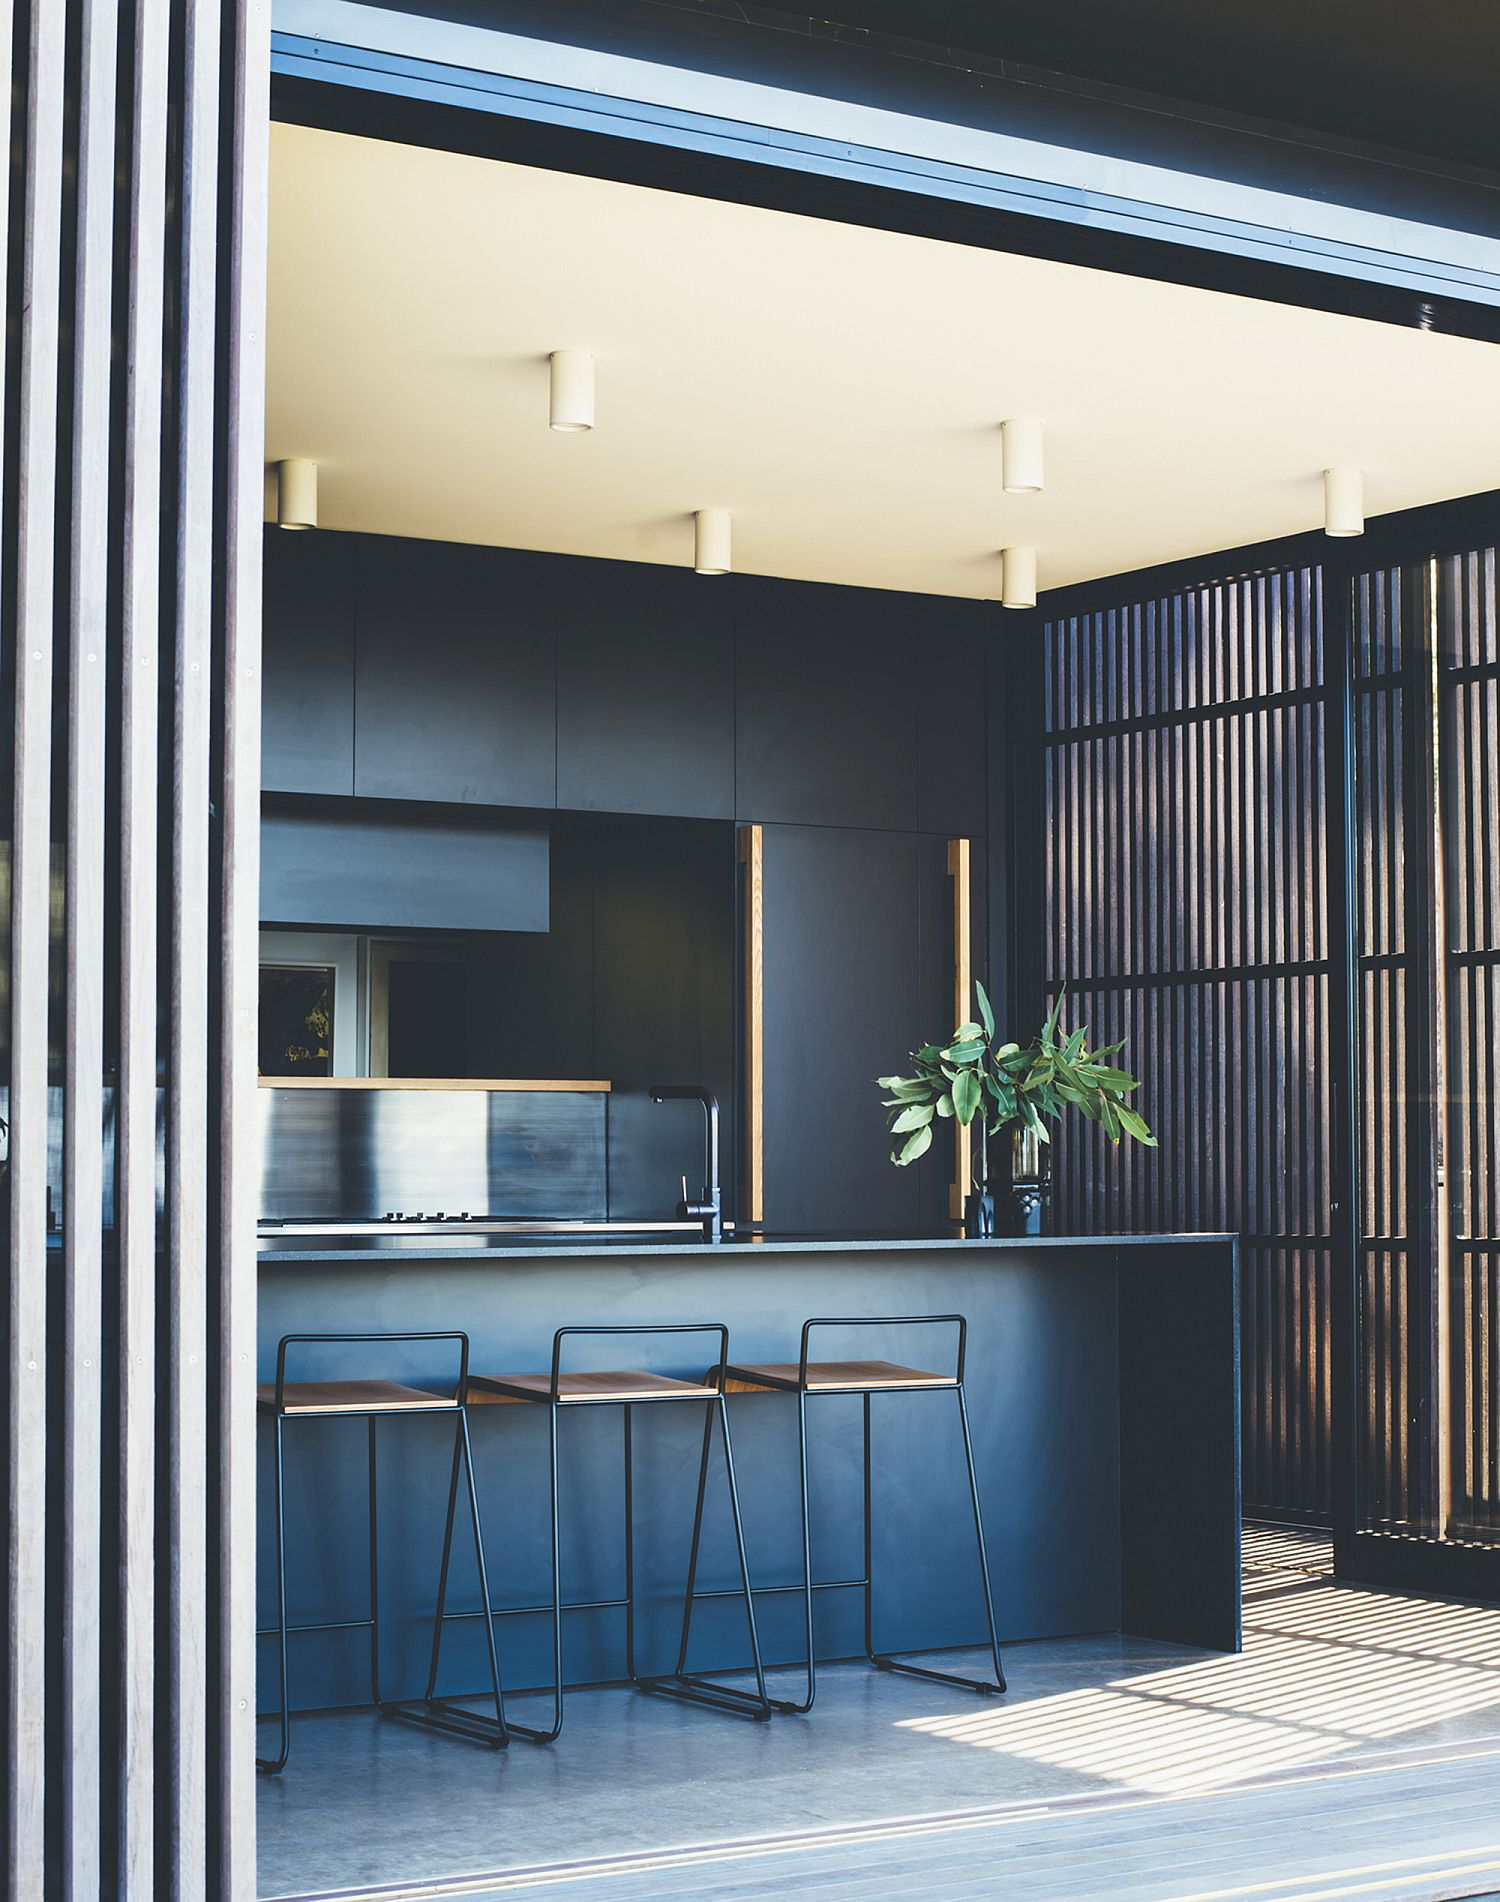 Fabulous use of dark blue and white in the contemporary kitchen